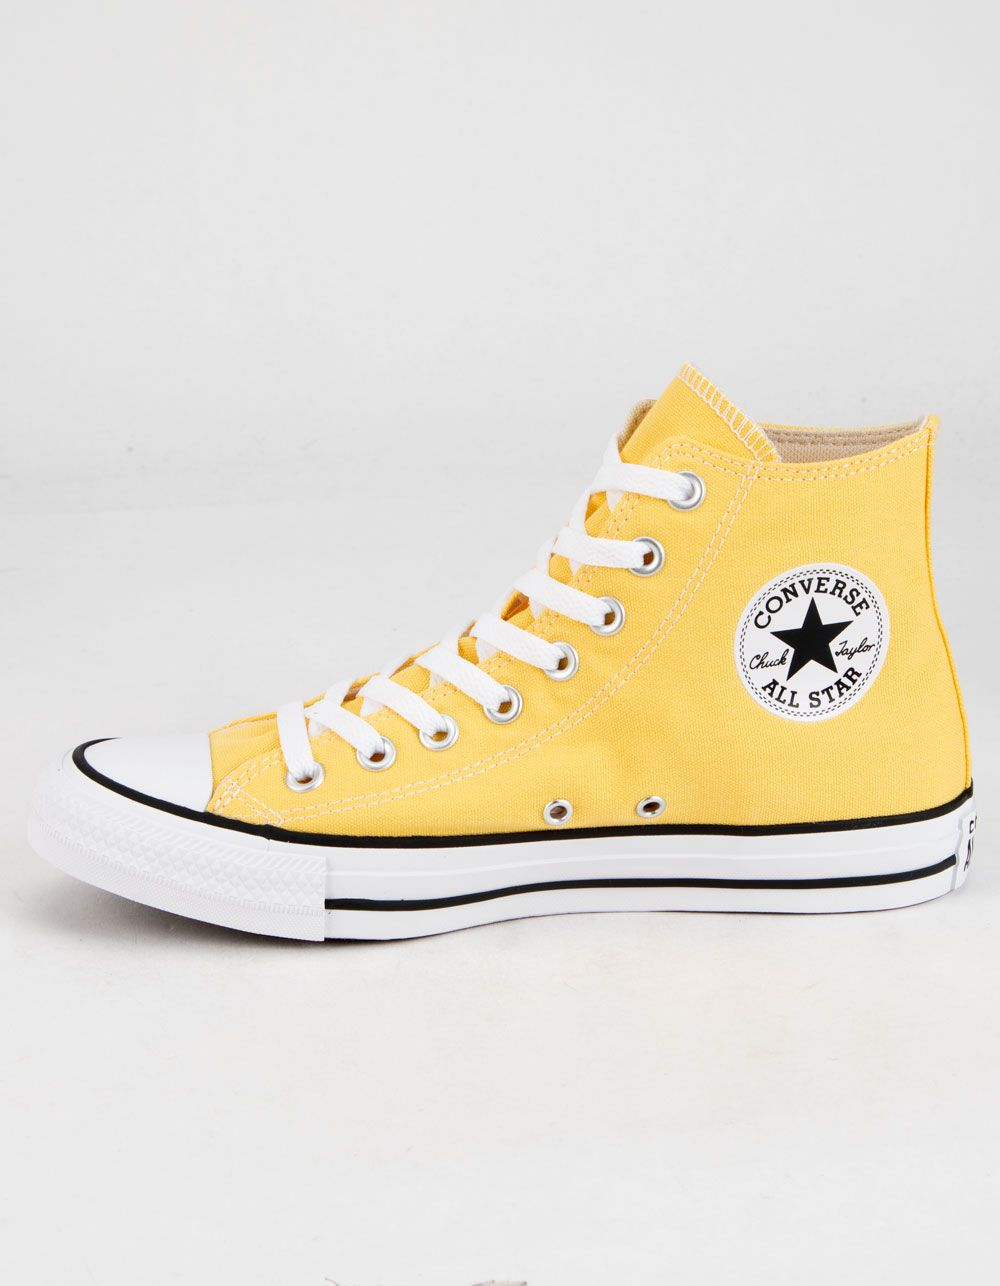 CONVERSE Chuck Taylor All Star Butter Yellow High Top Shoes ...